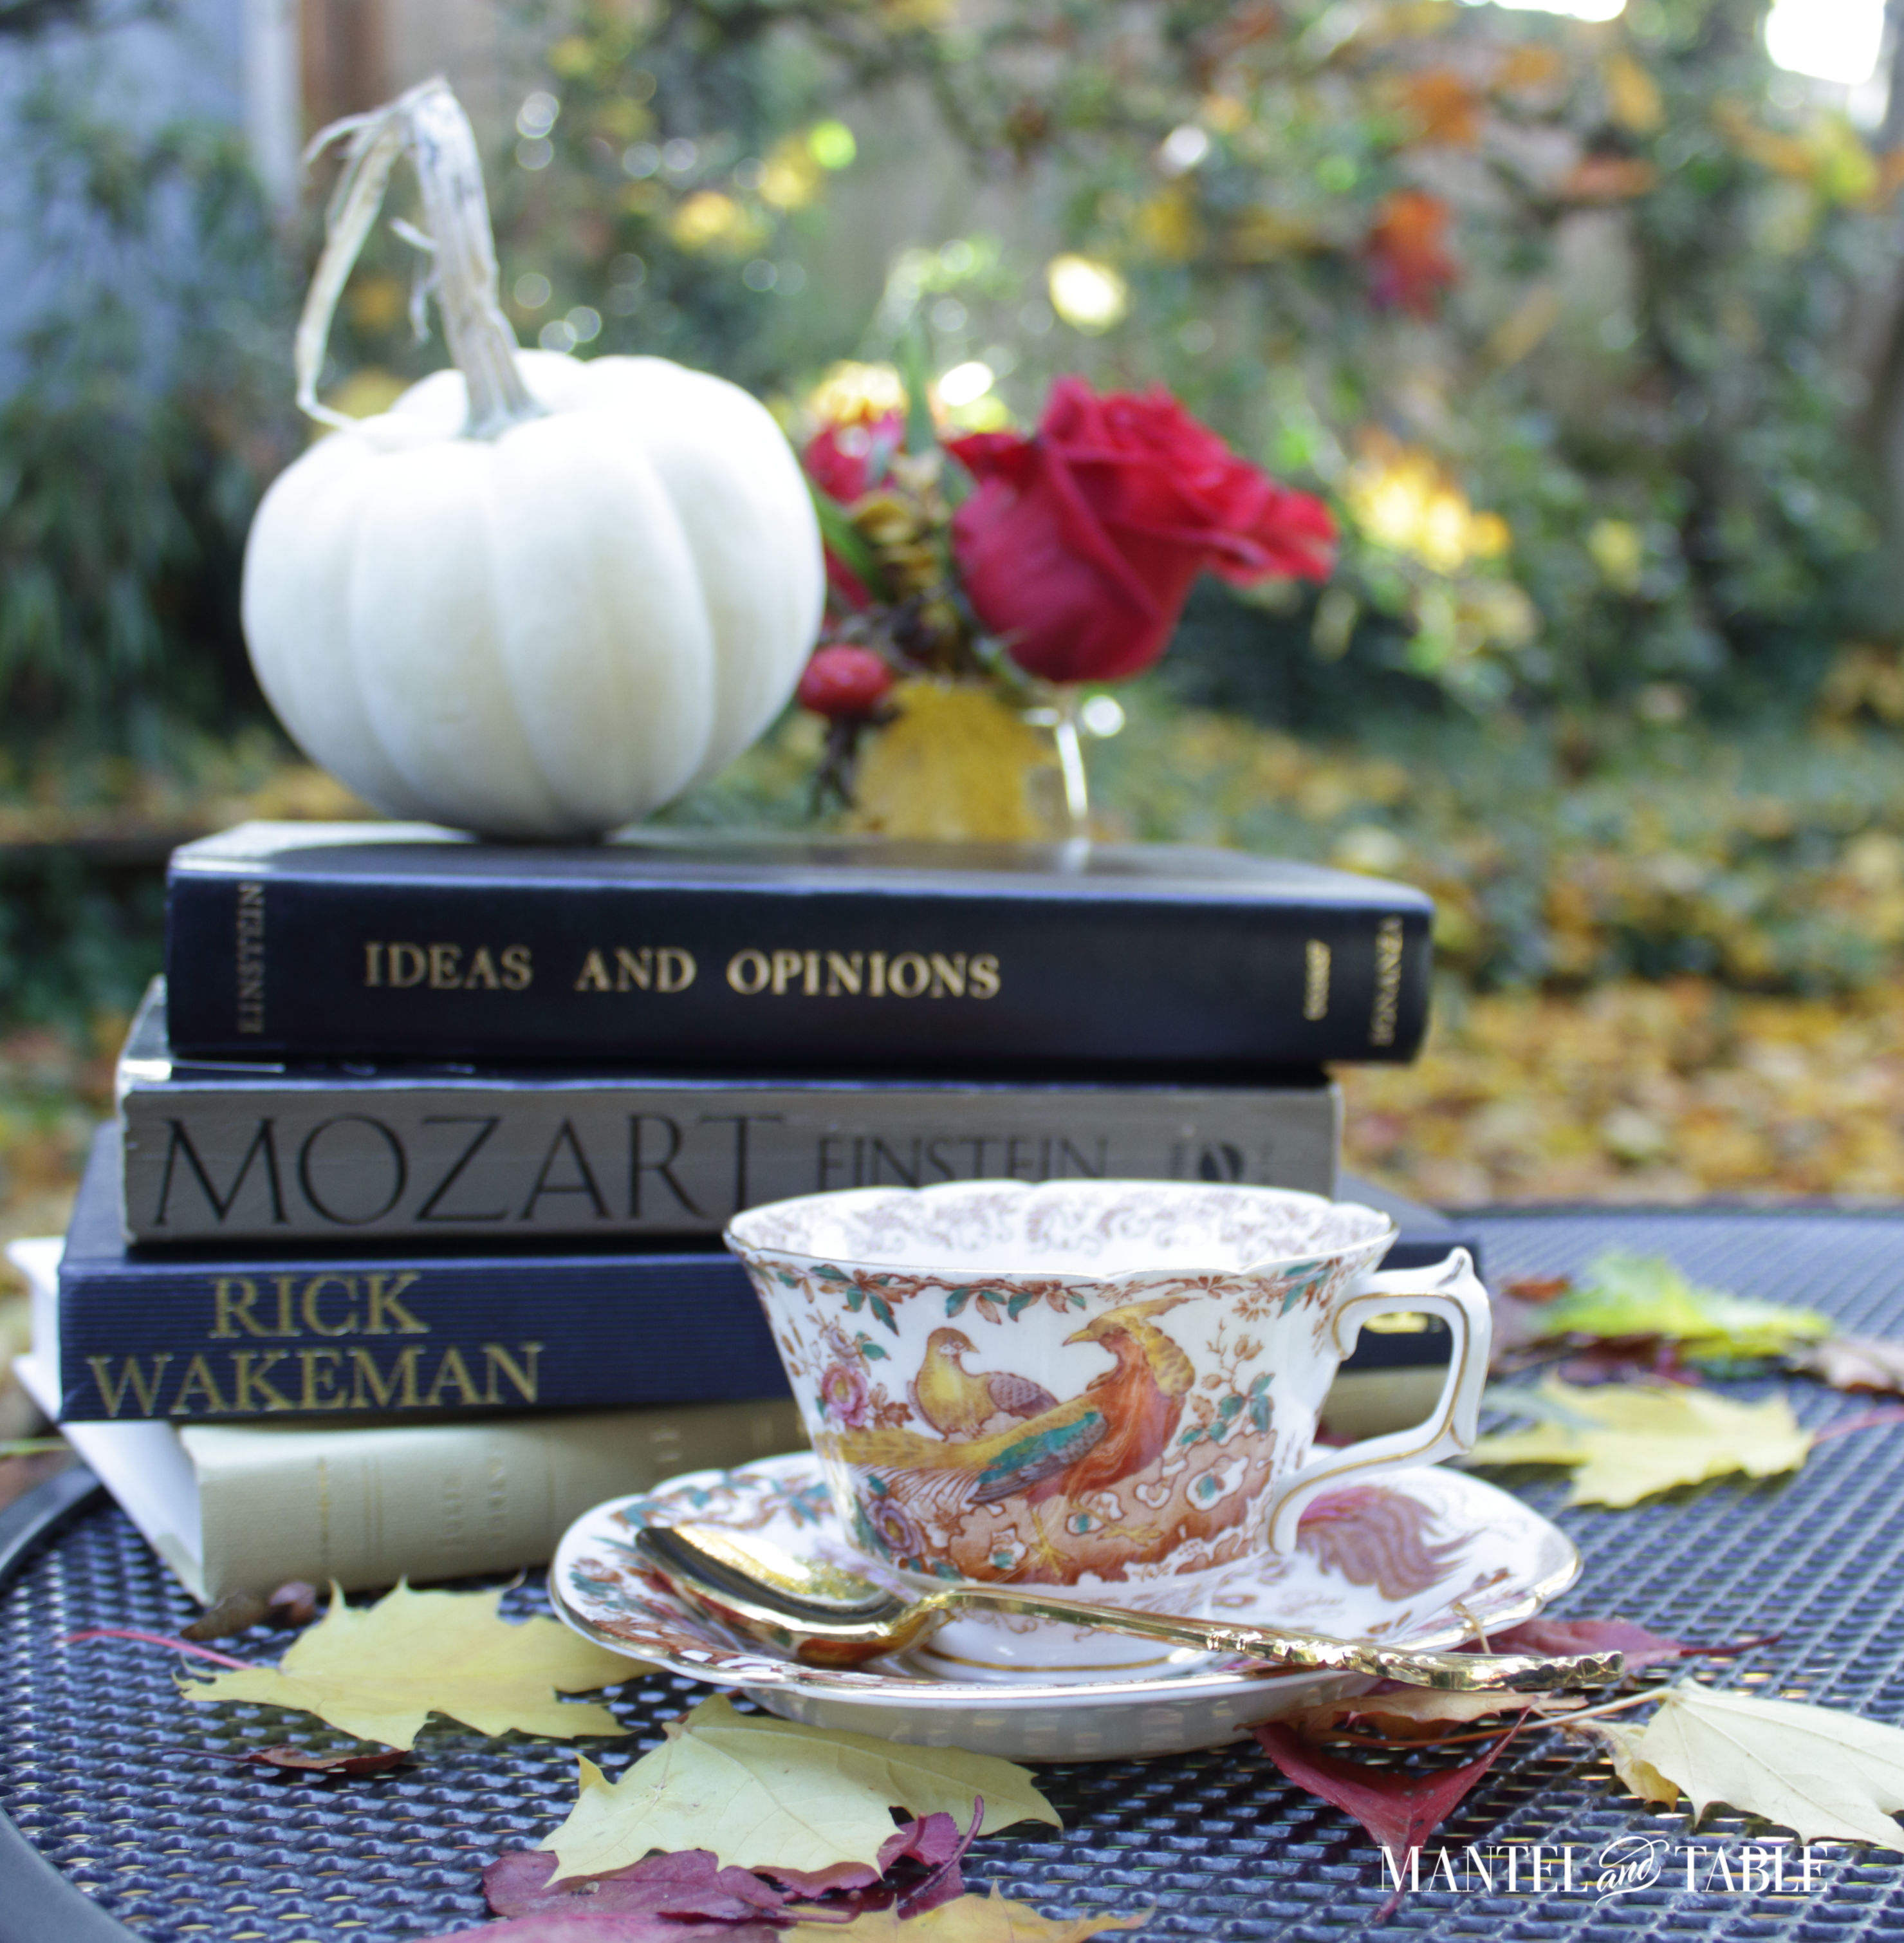 Royal Crown Derby teacup with book stack